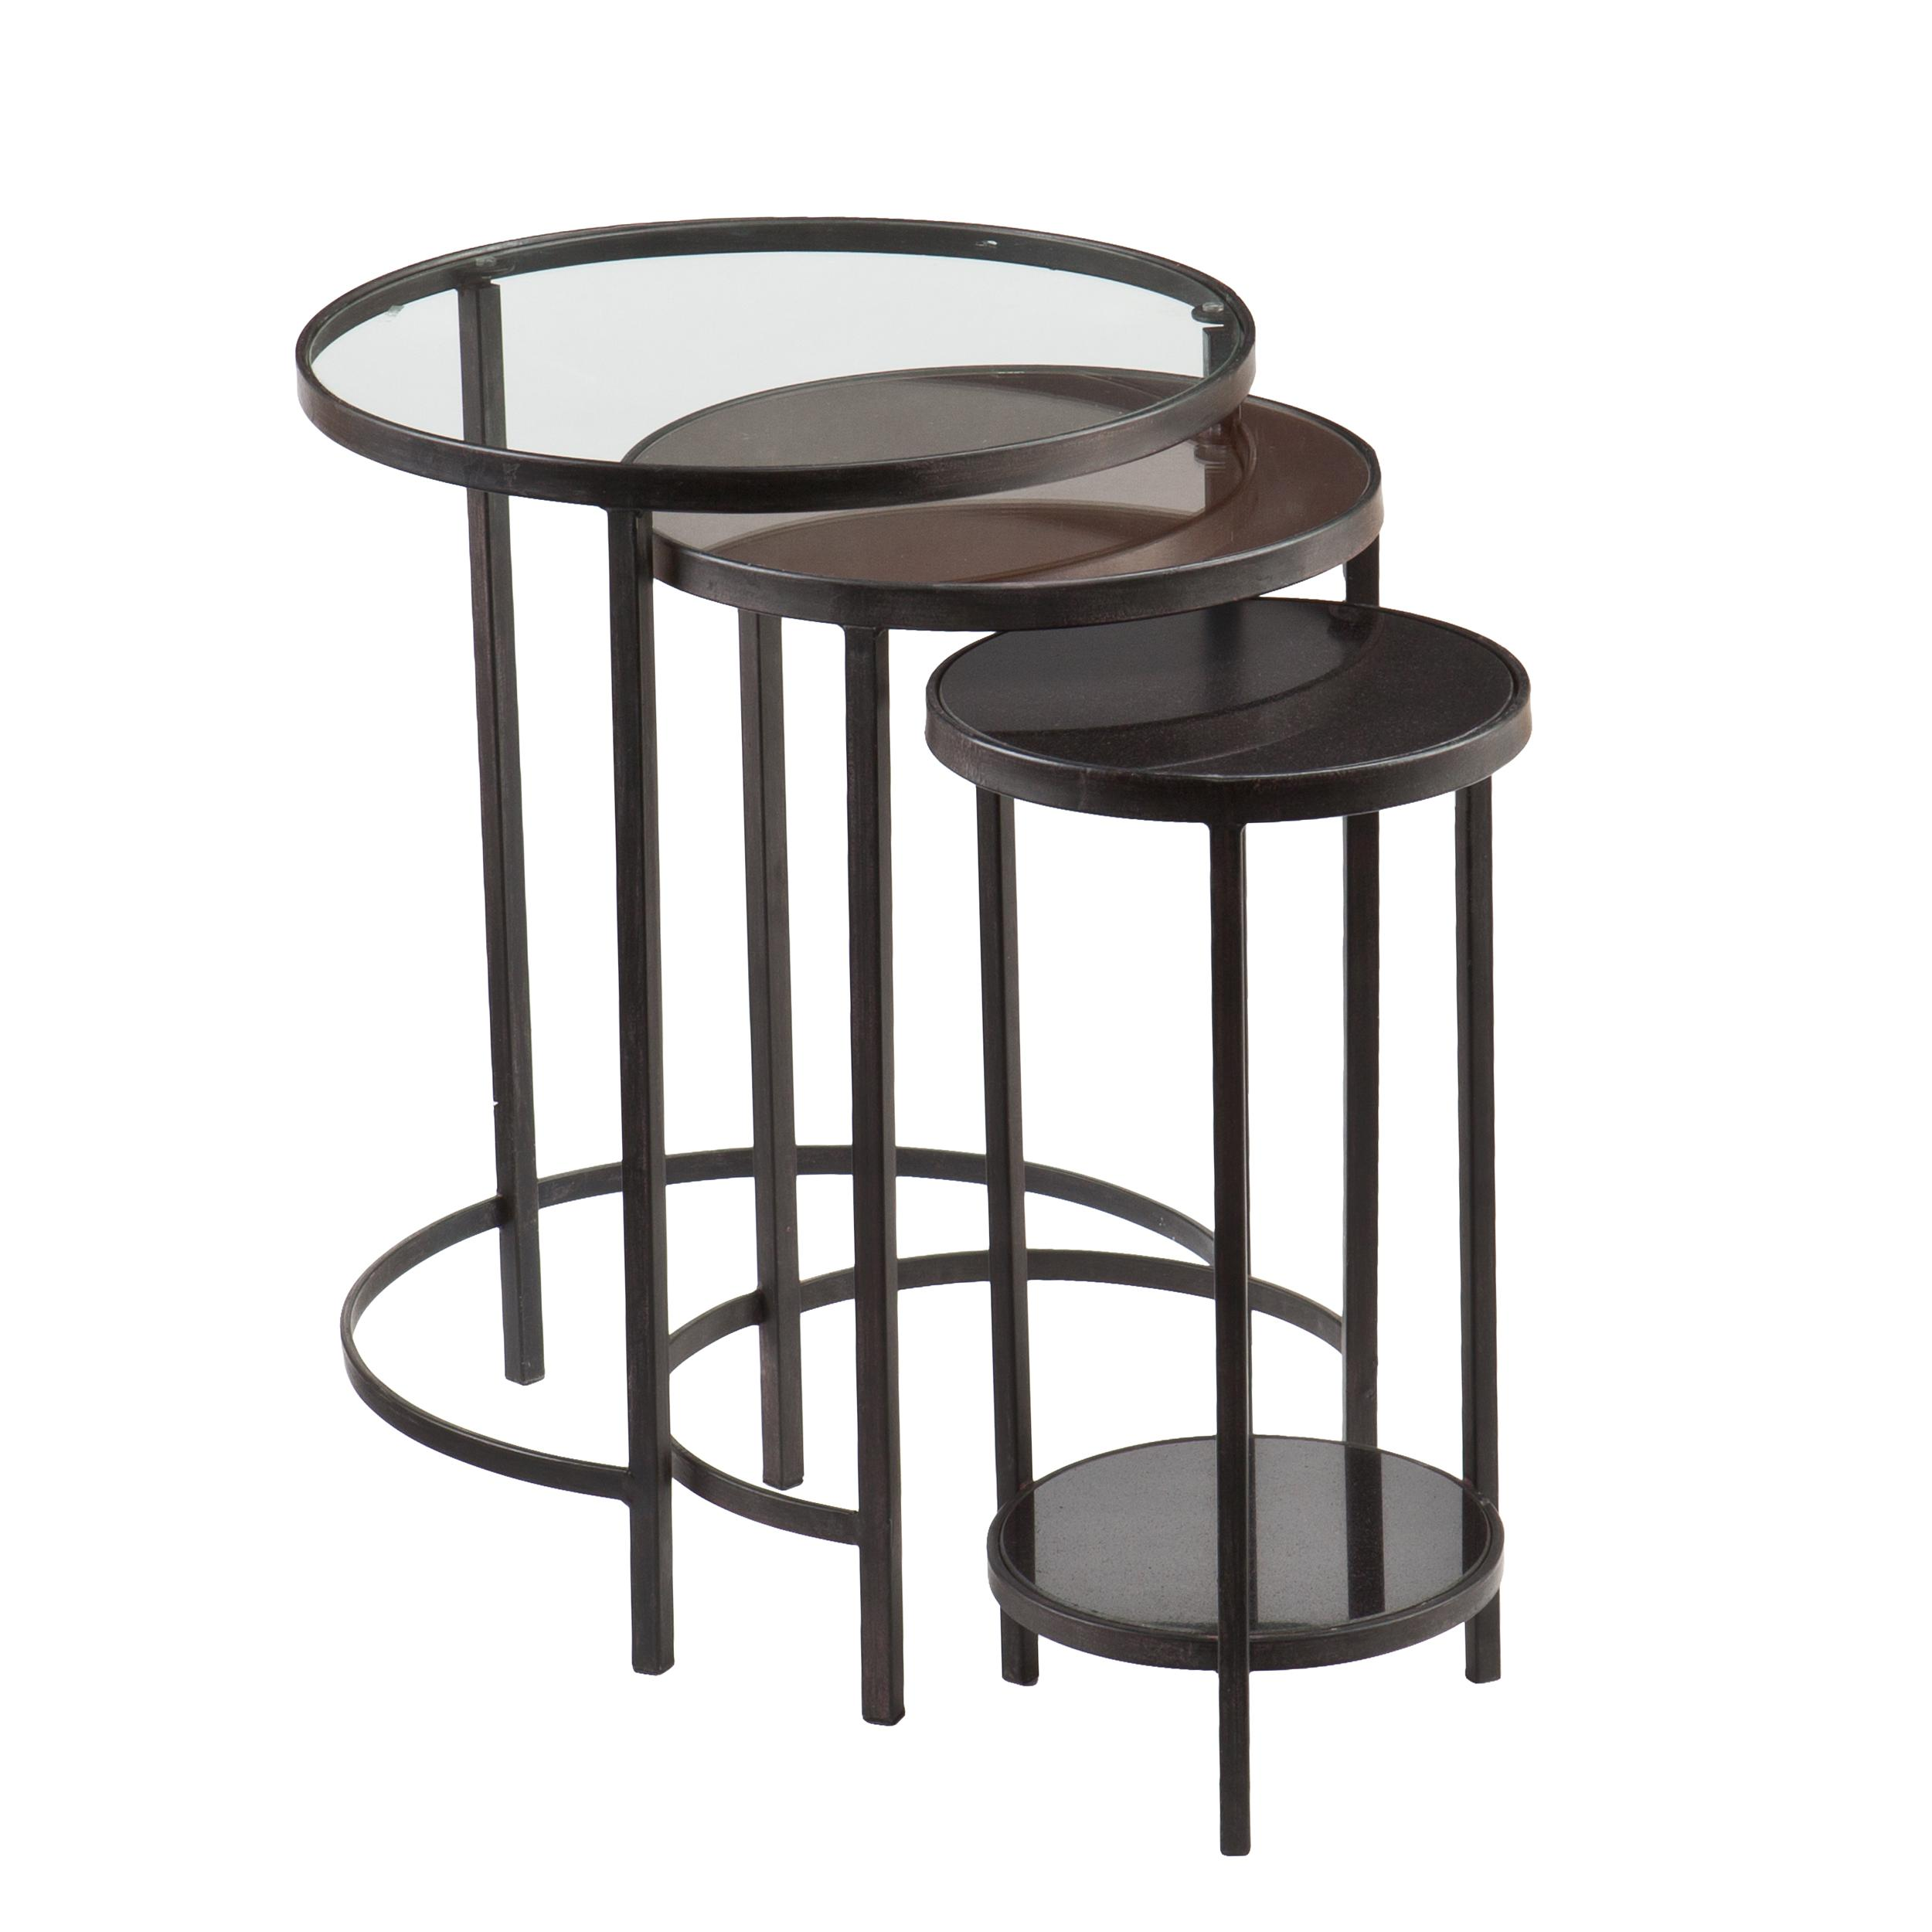 Nesting Tables Amazoncom Holly Martin Ocelle 3pc Nesting Tables Kitchen Dining